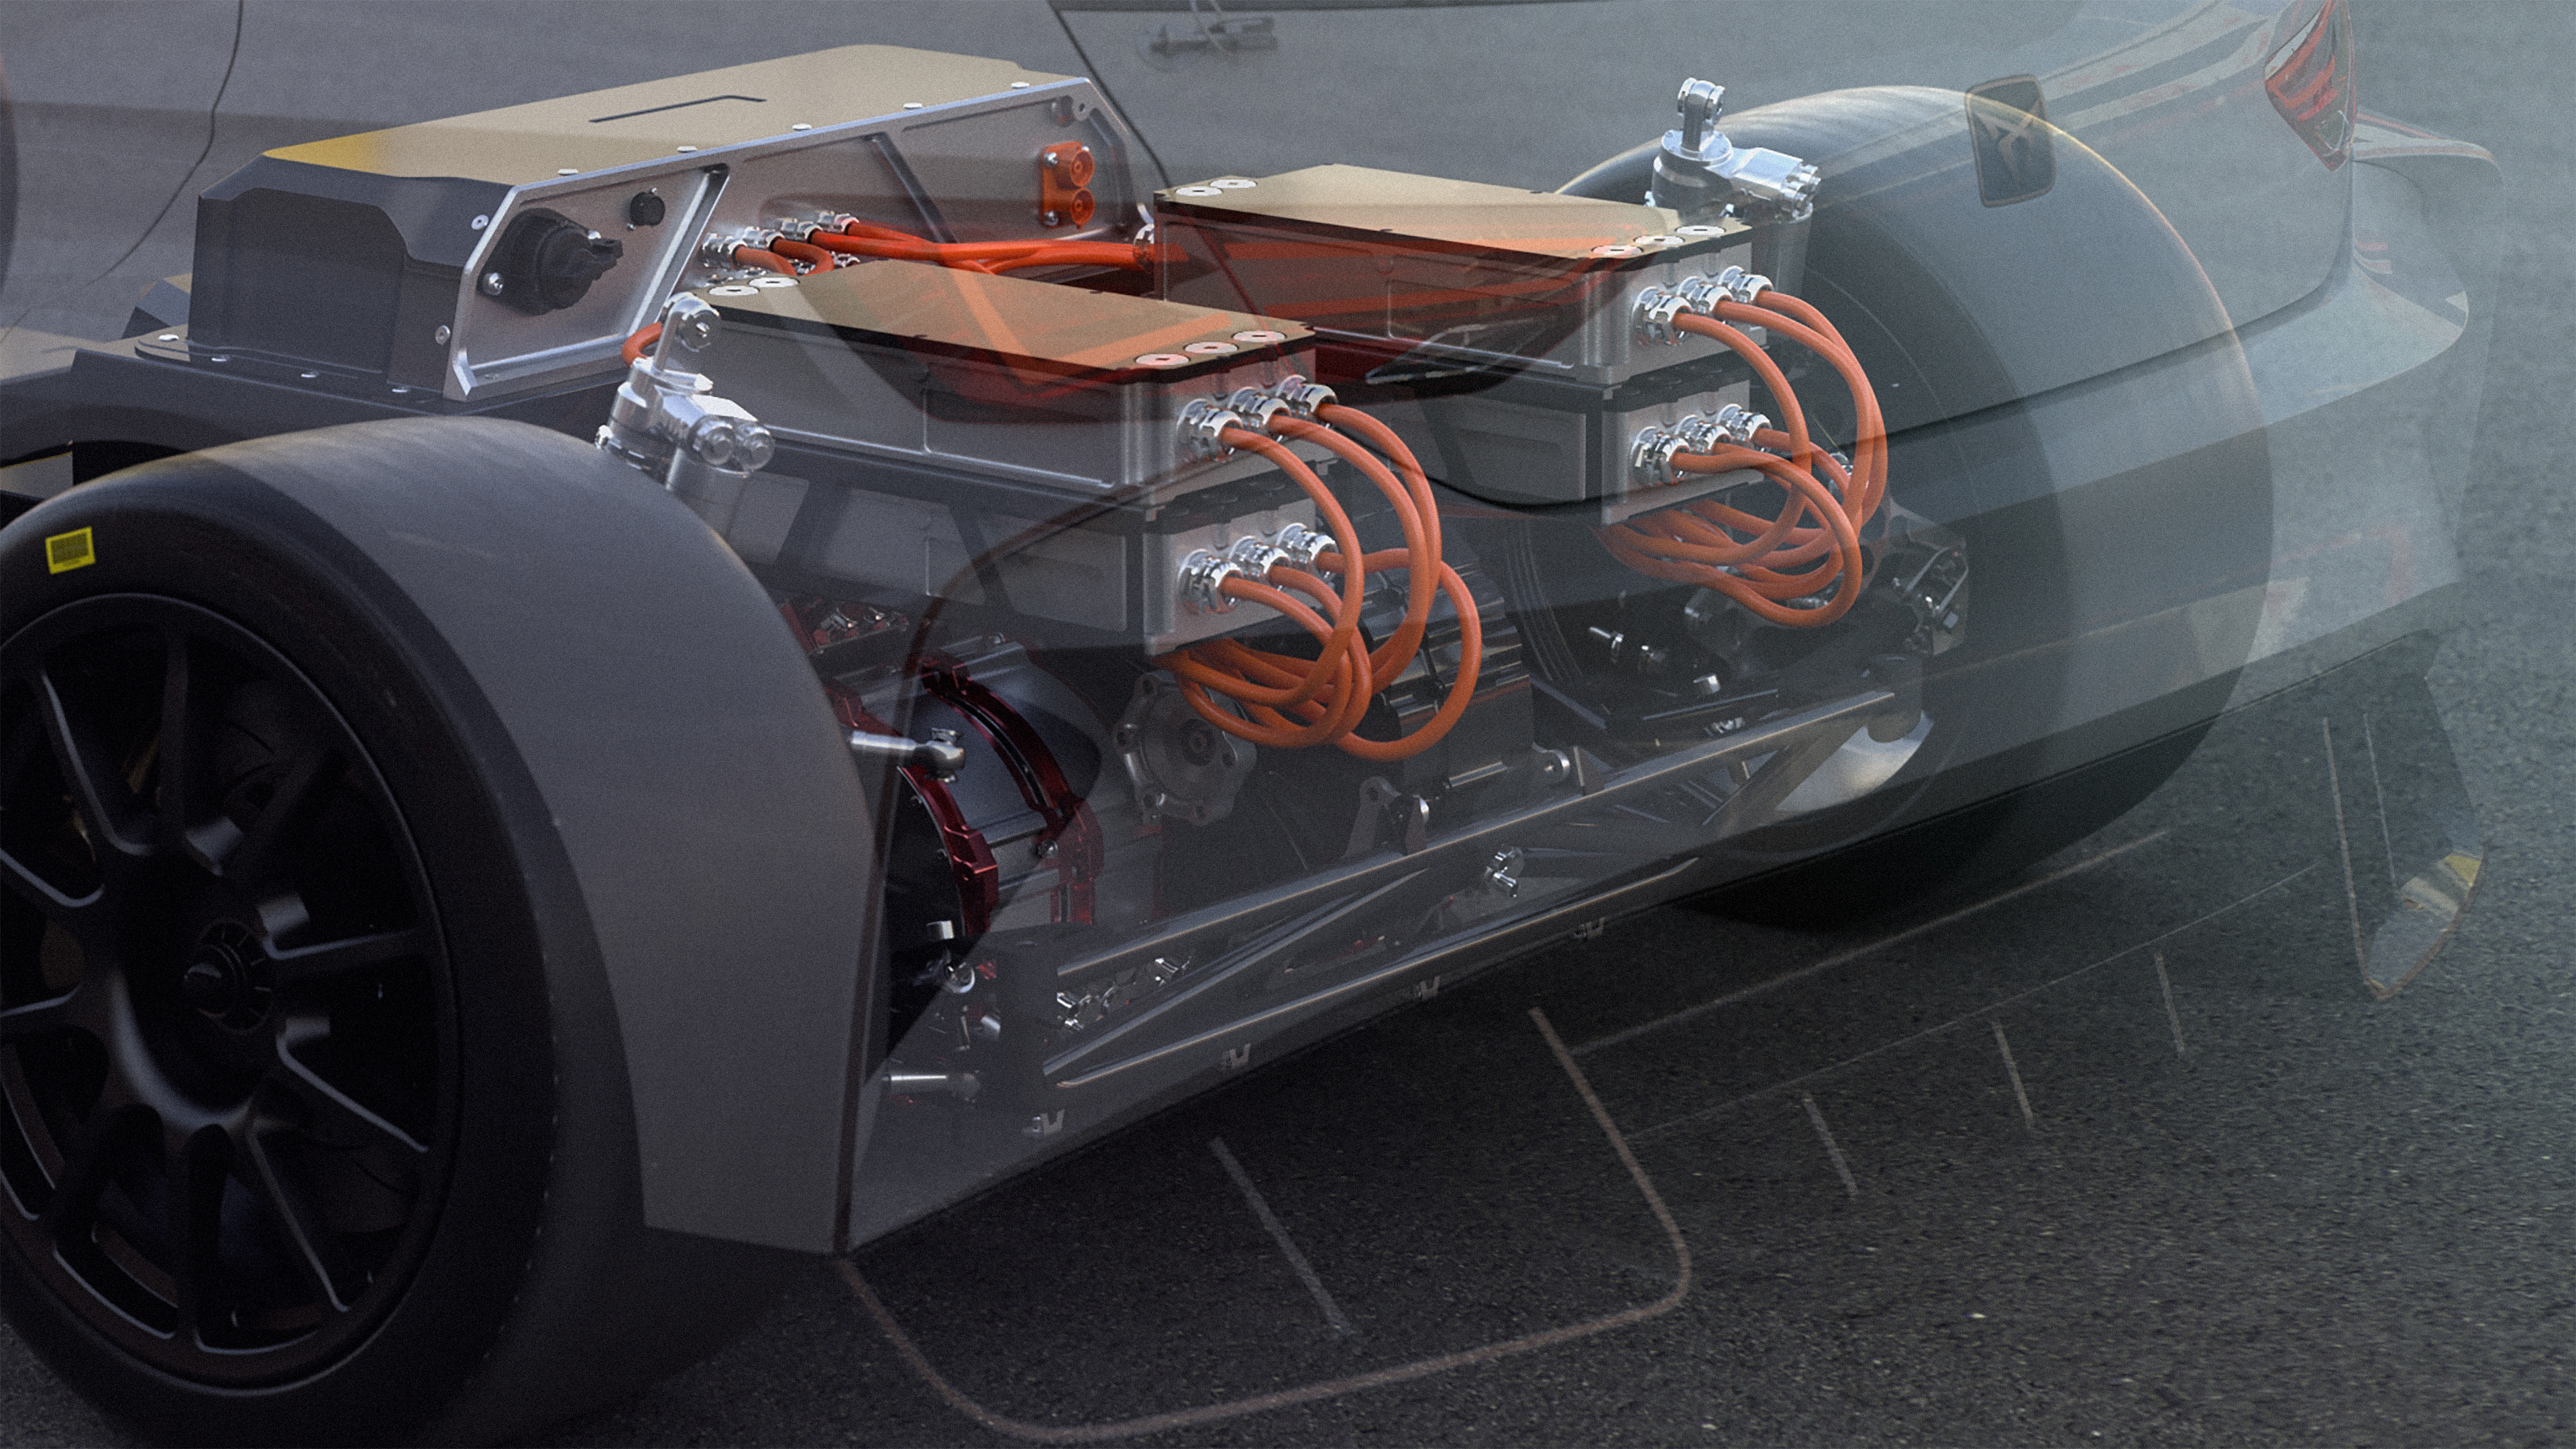 The four engines are mounted over the rear axle and deliver 680 hp